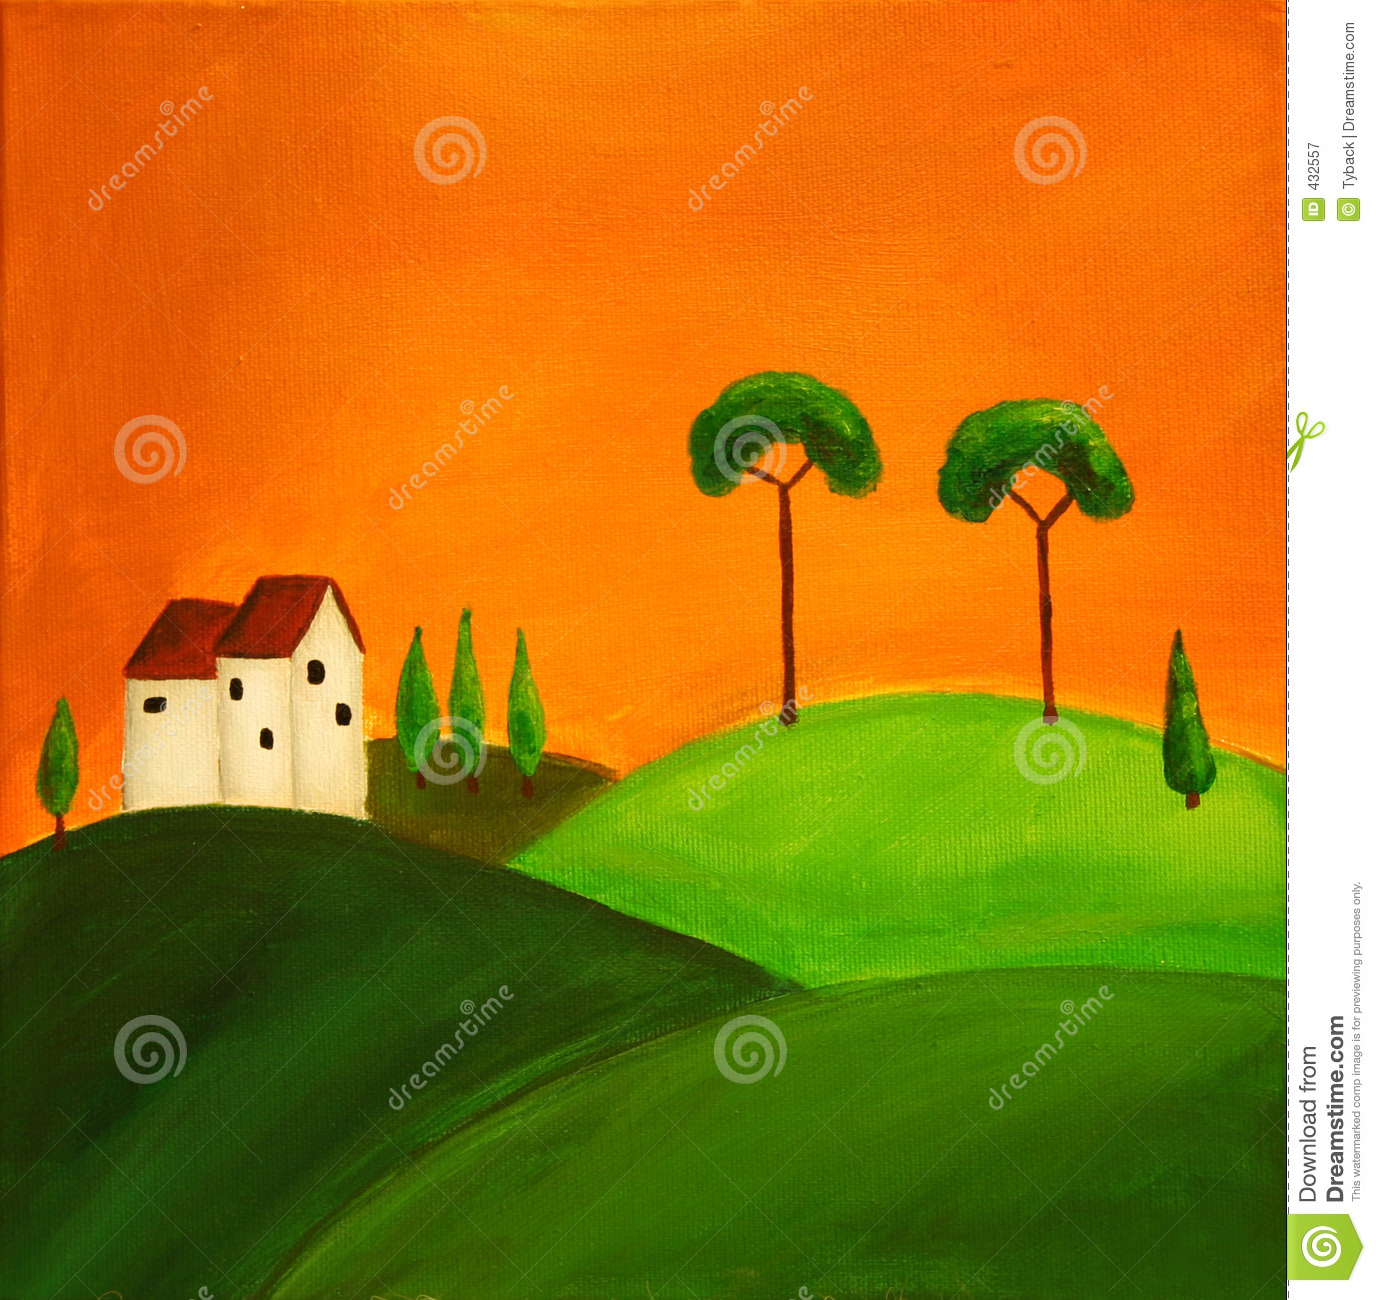 Tuscan landscape 1 stock illustration. Image of land ...